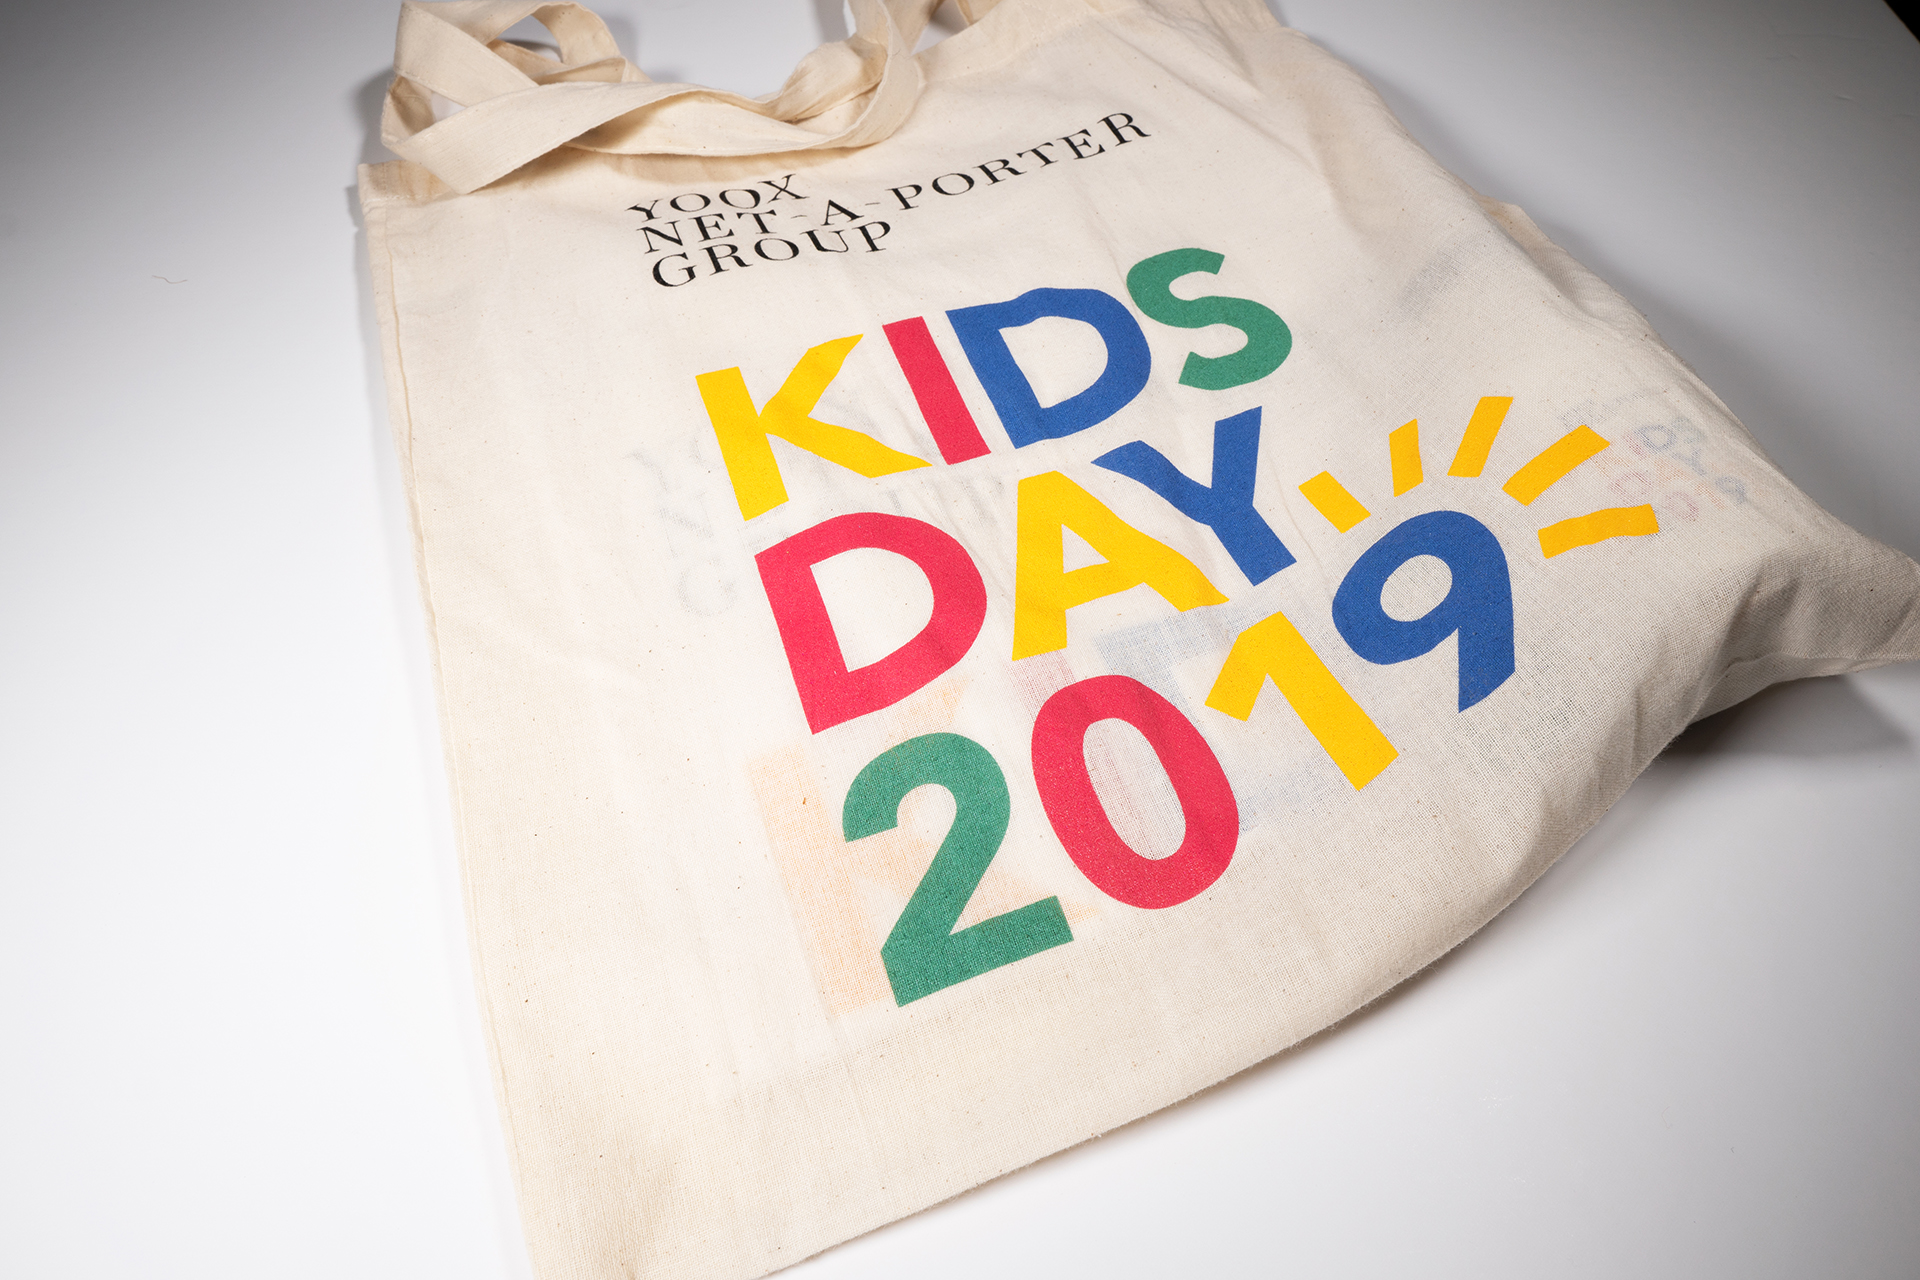 Goody Bag for Kids Day 2019